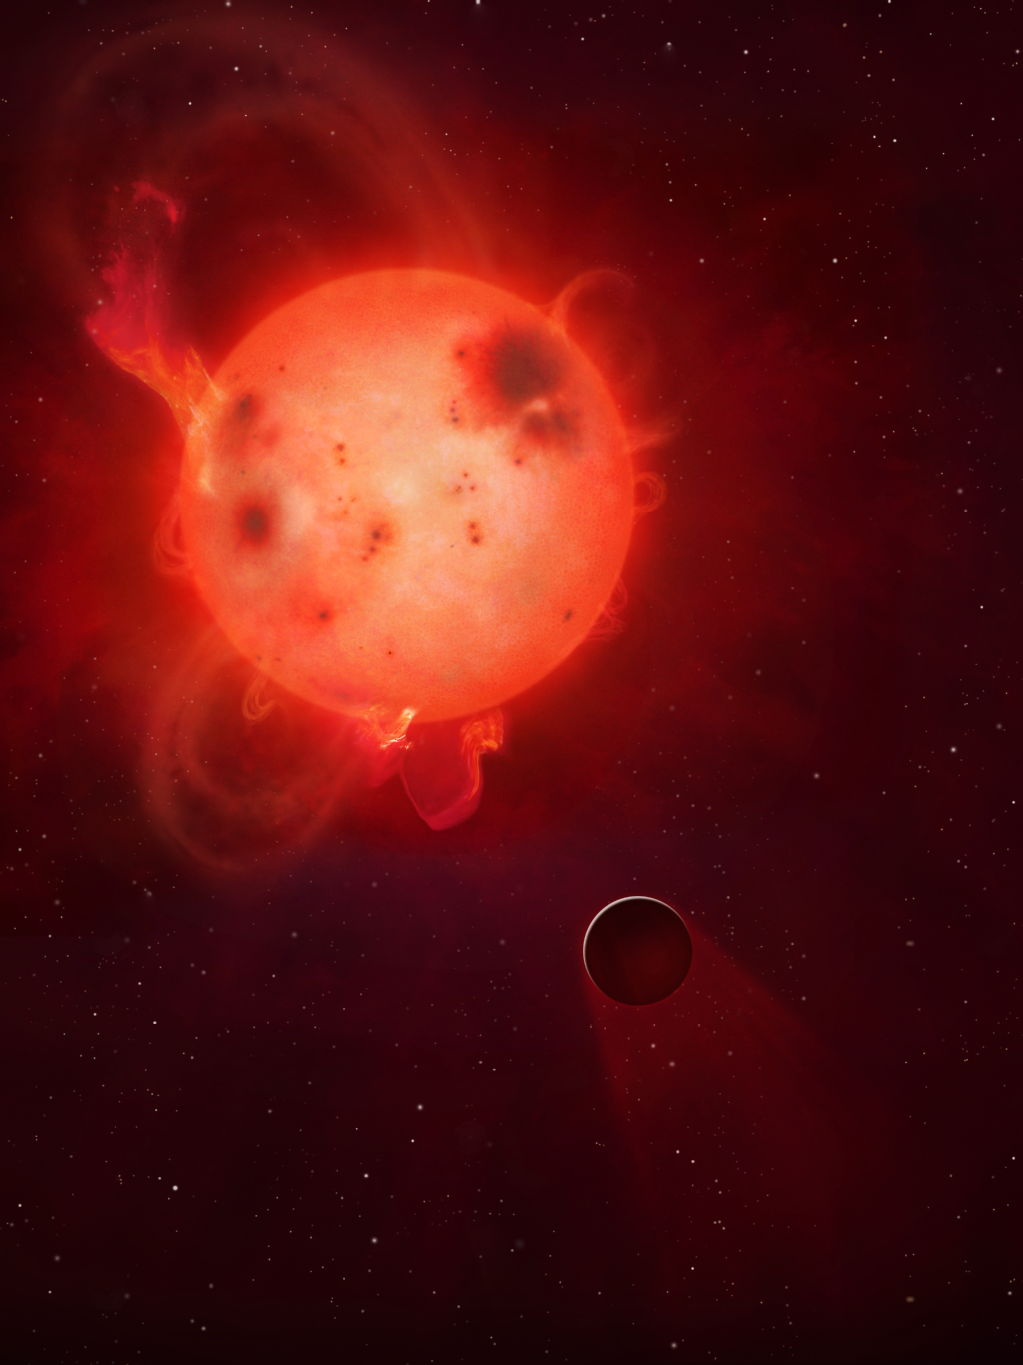 Exoplanet Kepler-438b's Atmosphere Stripped Away